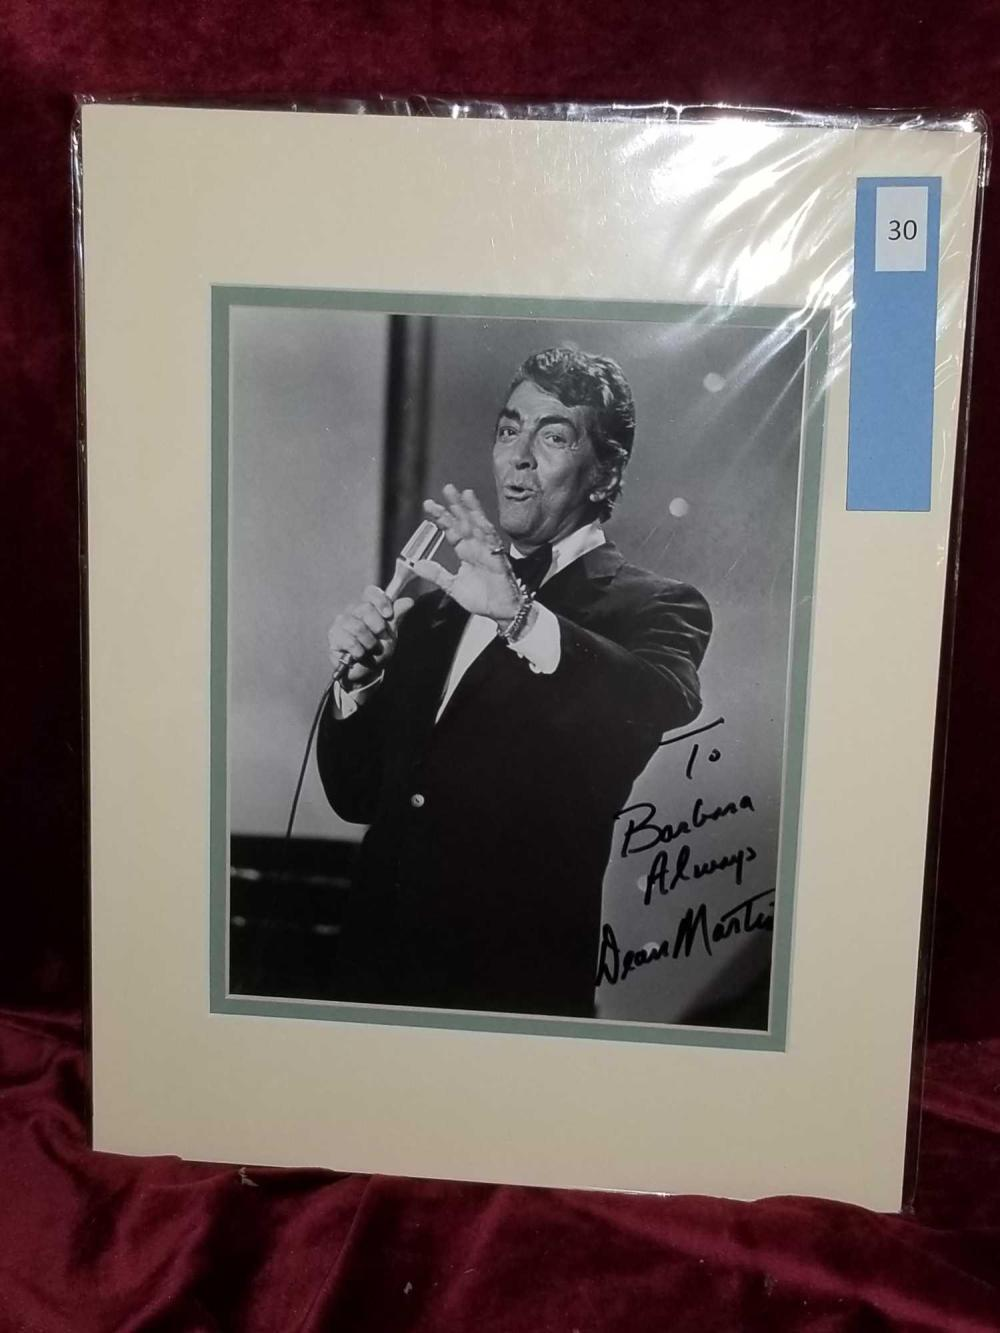 DEAN MARTIN SIGNED BLACK & WHITE PHOTO